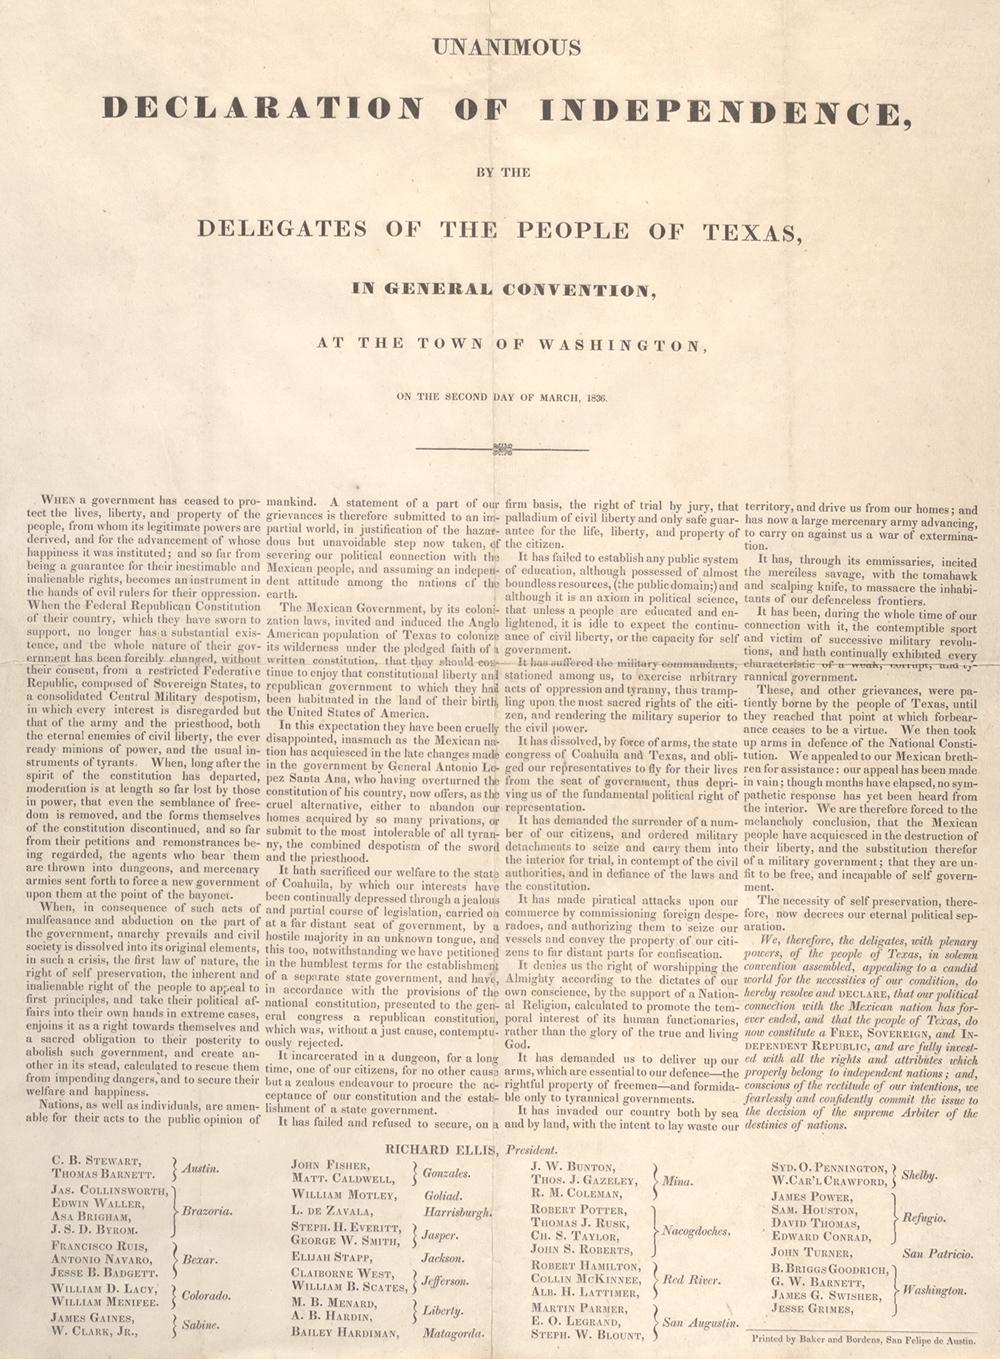 texas declaration of independence 1836 the gilder lehrman texas declaration of independence 1836